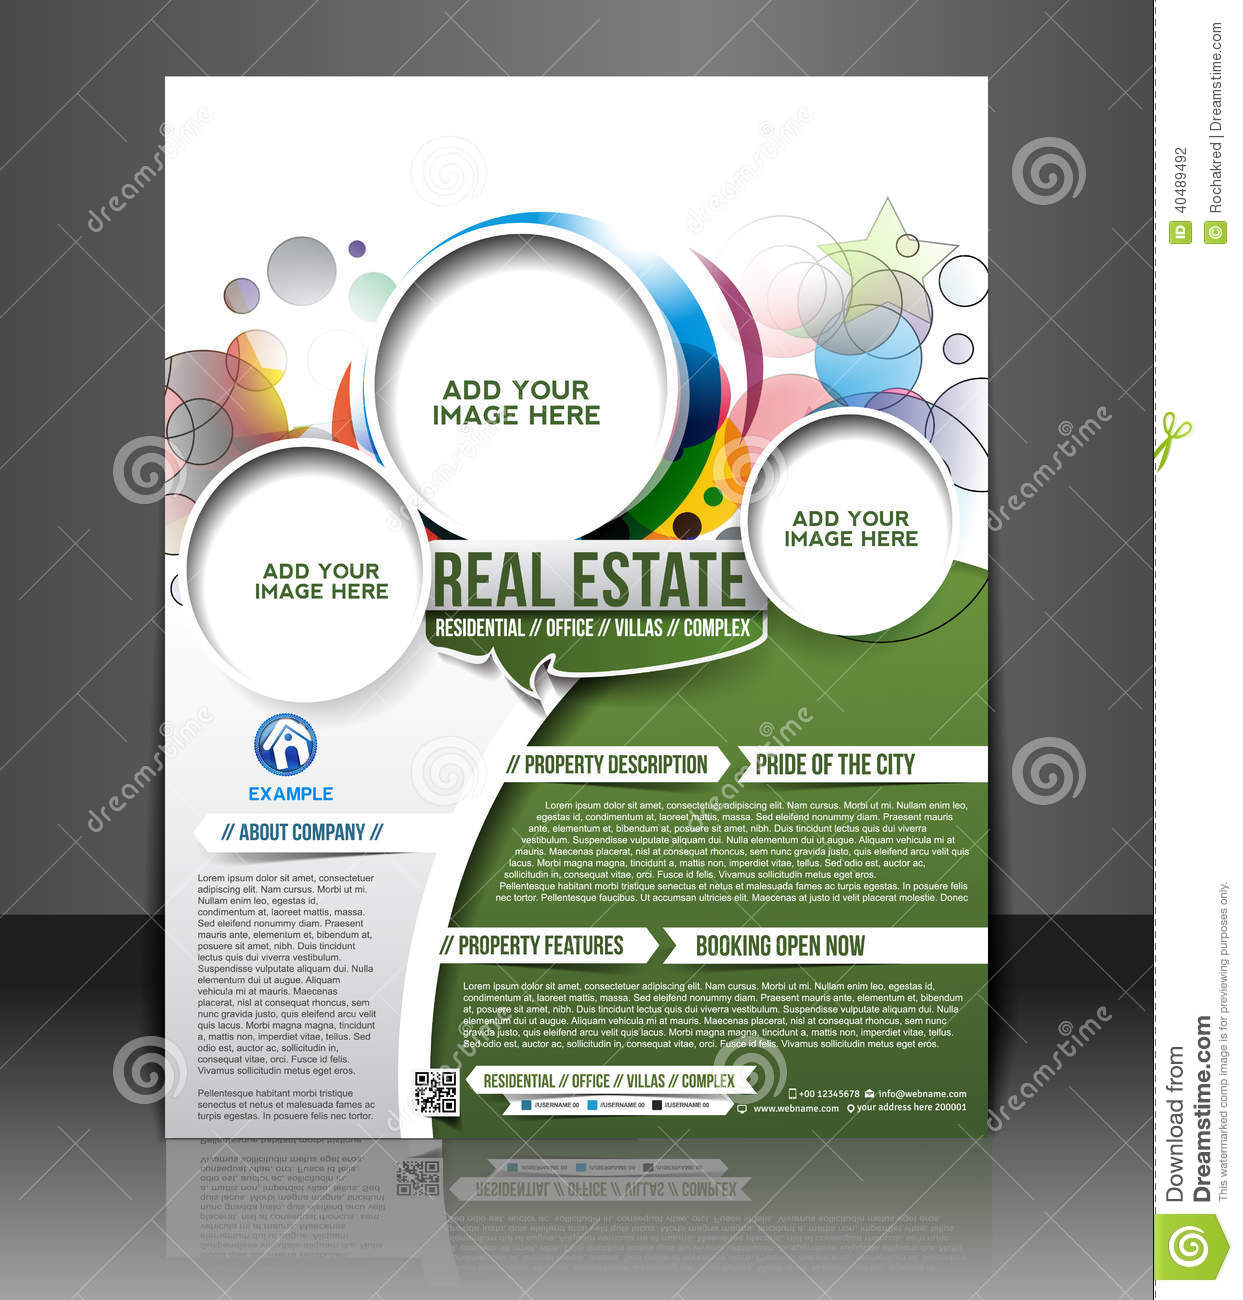 real estate flyer design stock vector image  real estate flyer design